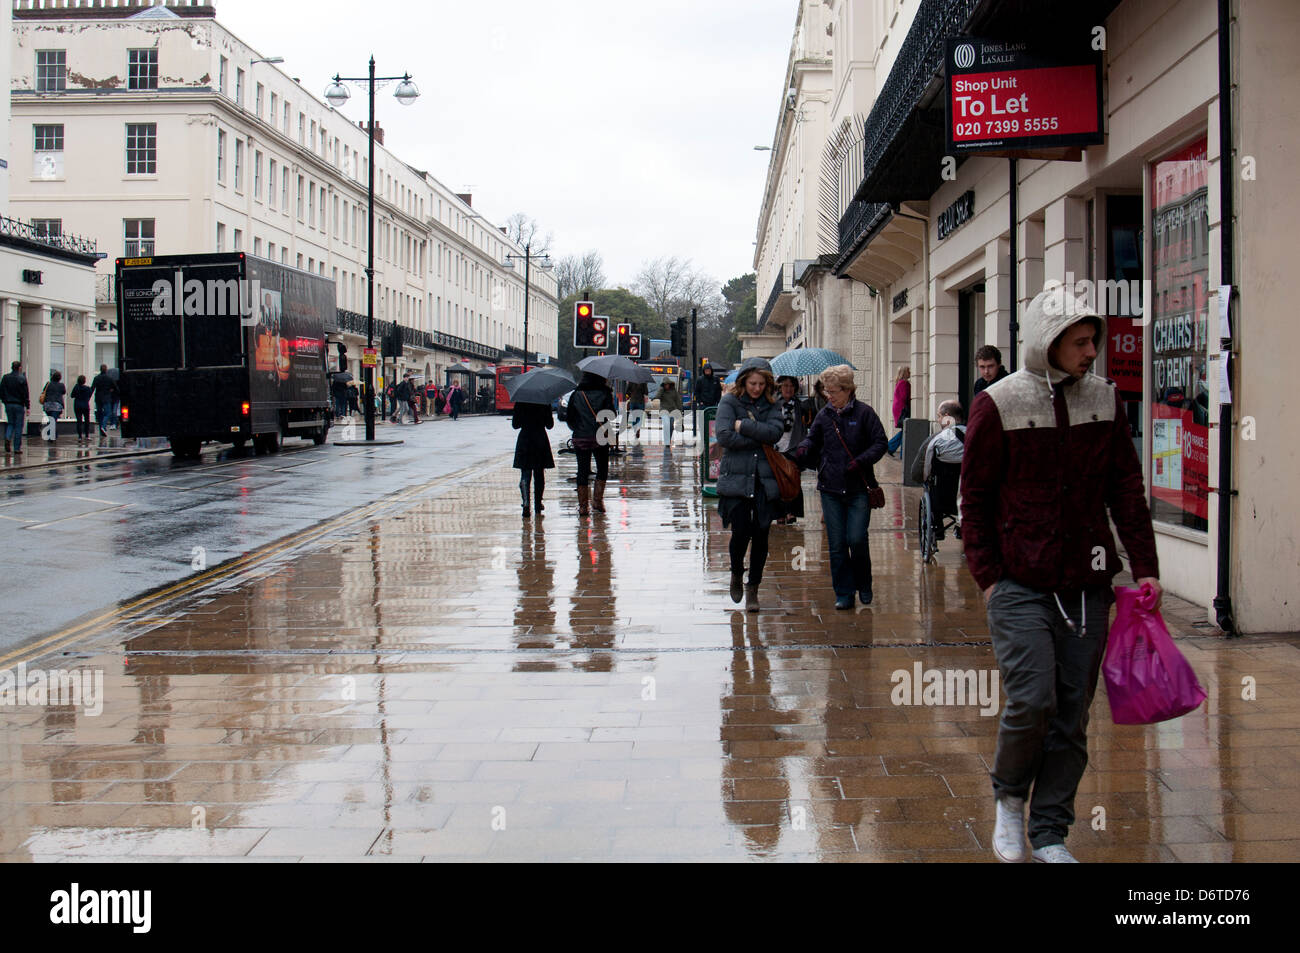 Dull wet weather, The Parade, Leamington Spa, UK - Stock Image